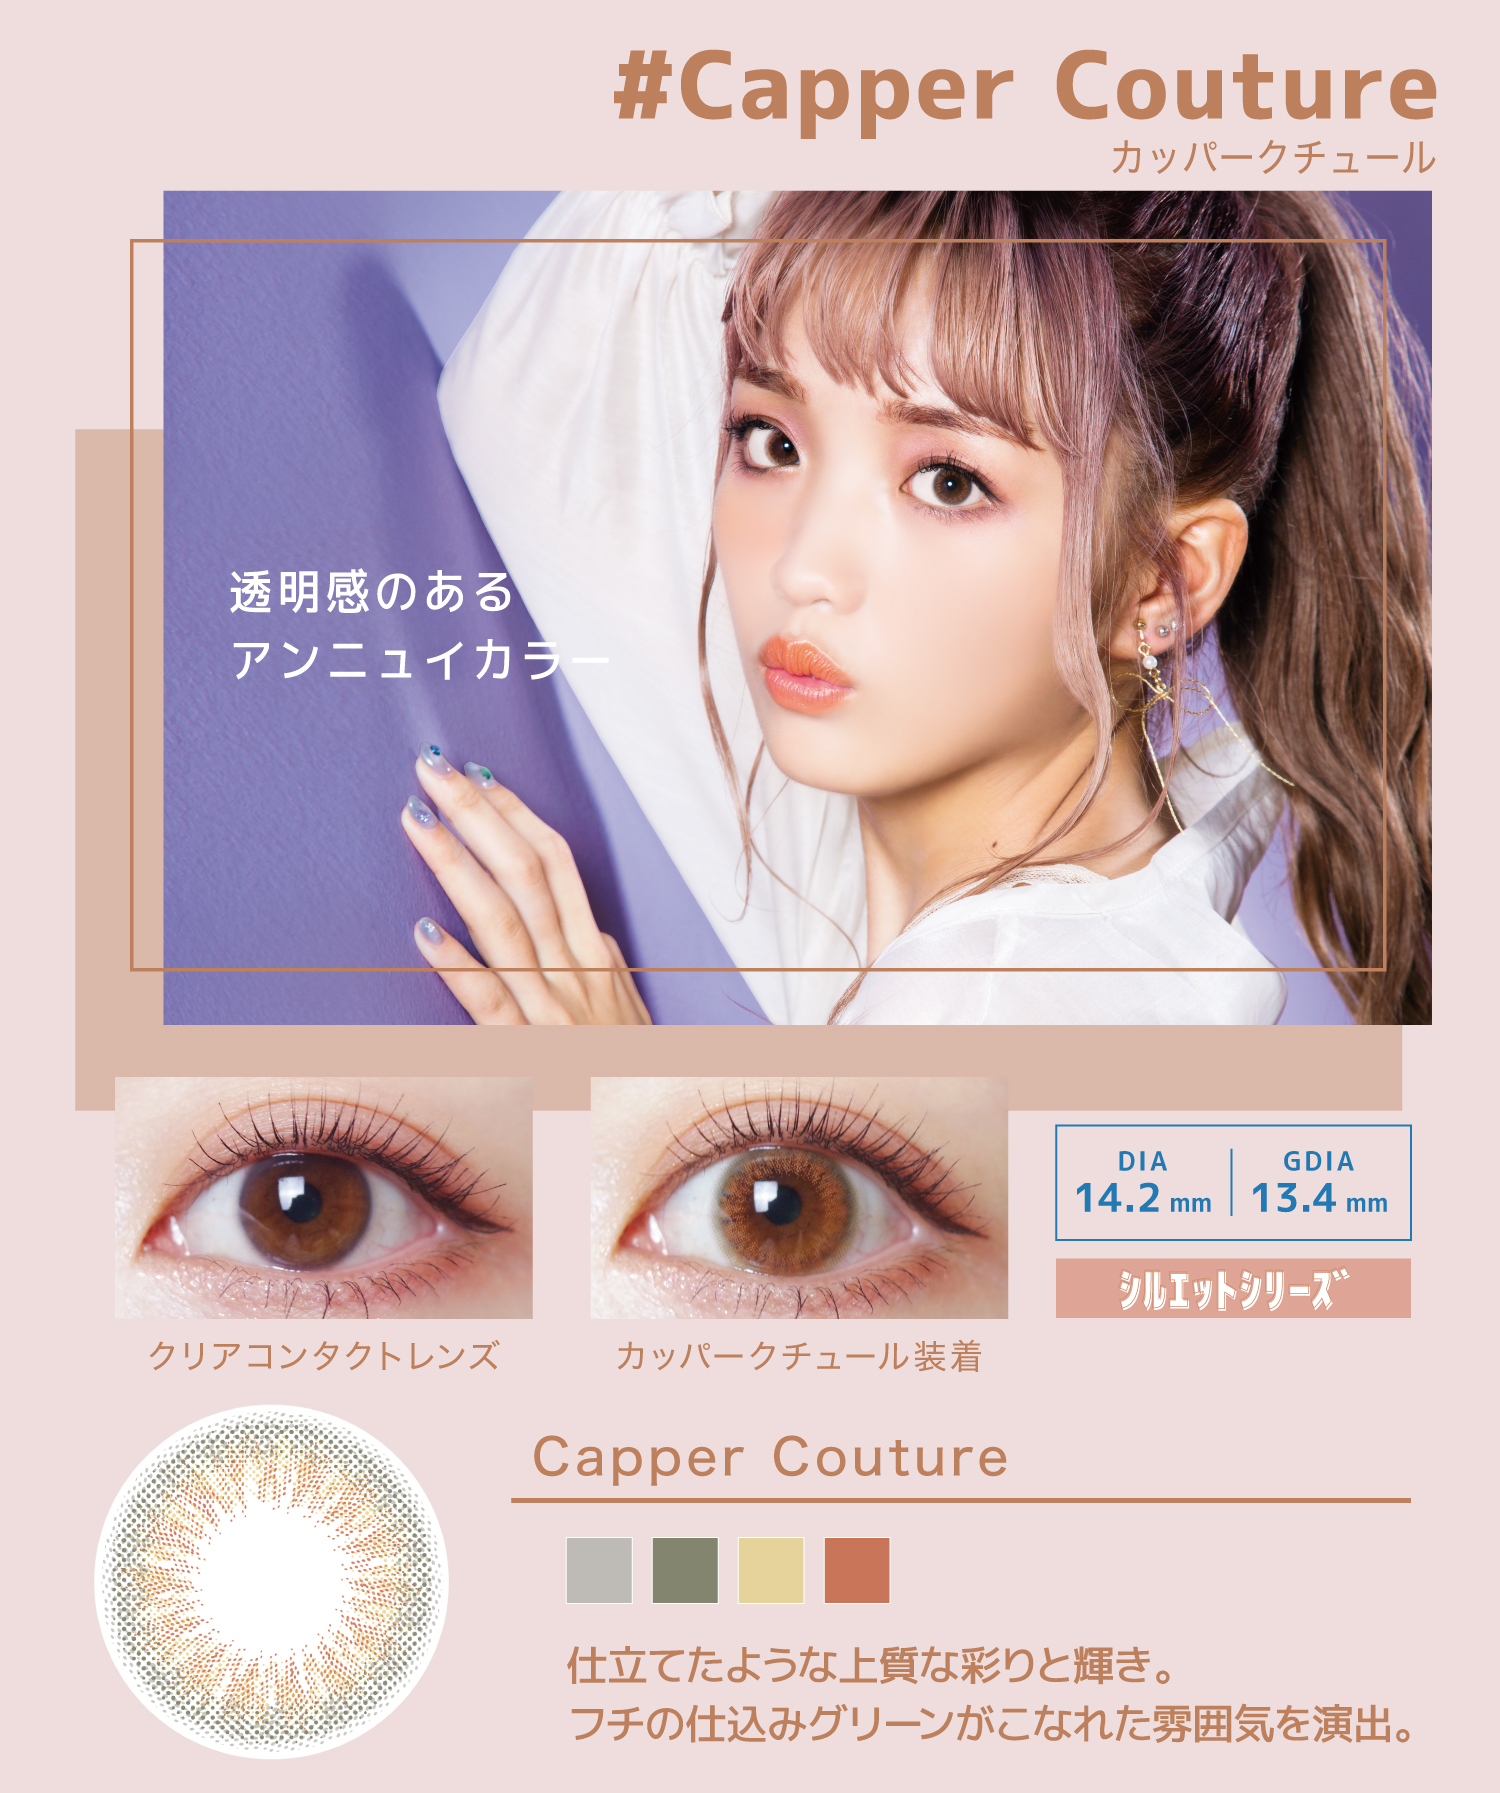 Capper Couture カッパークチュール